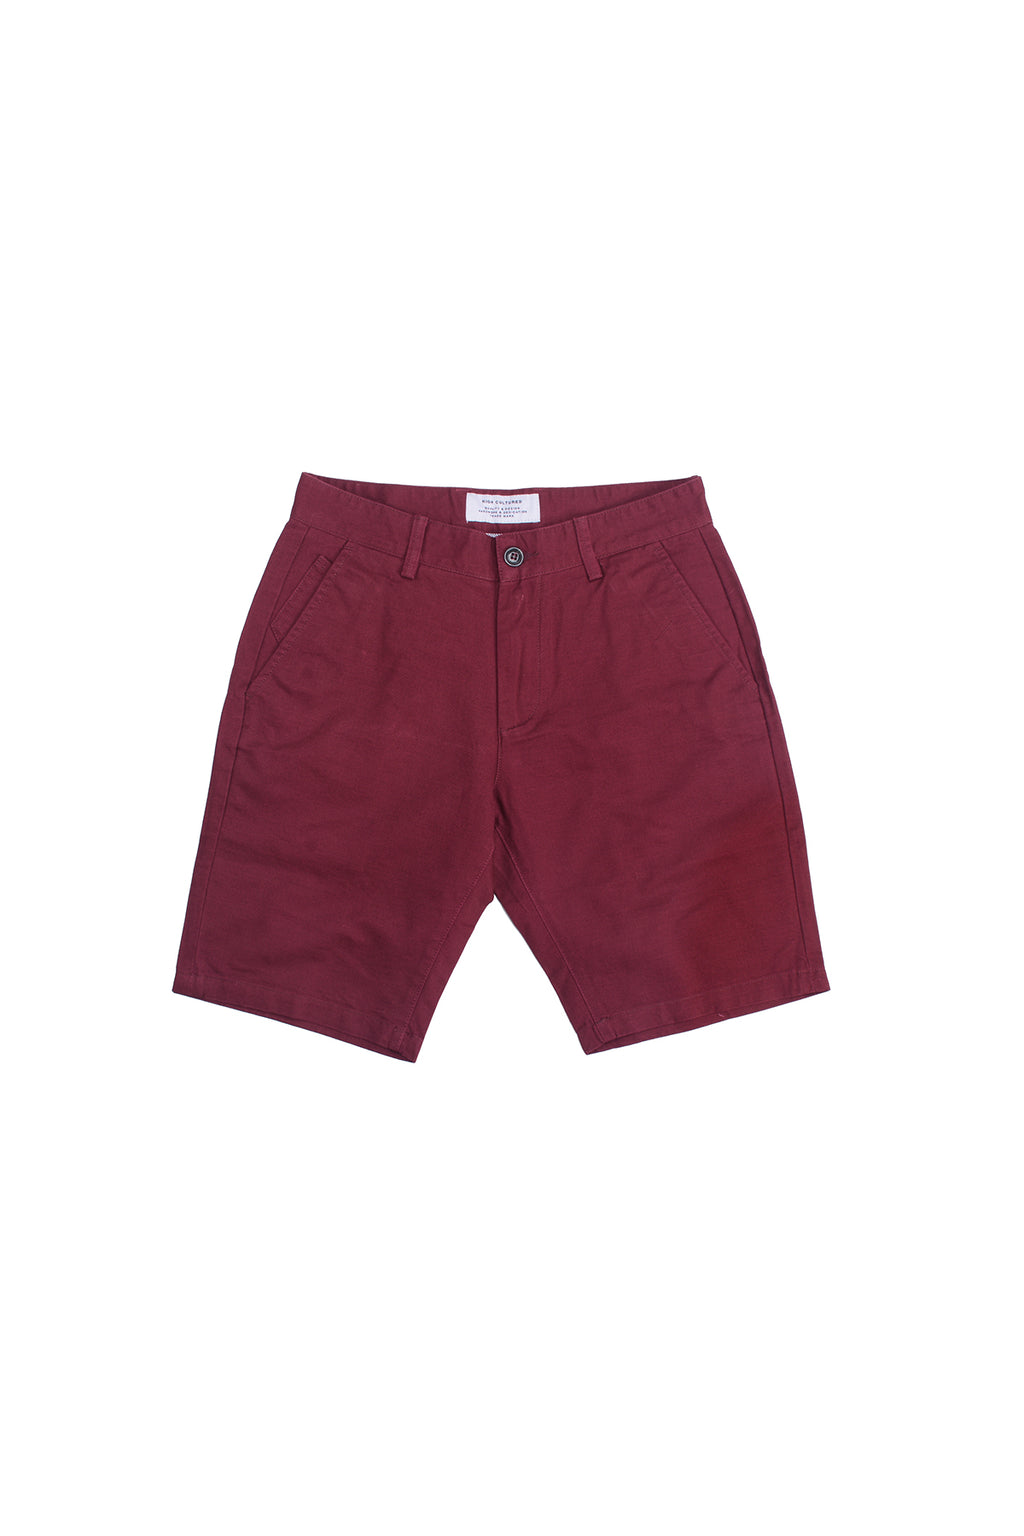 STANDARD-FIT CHINO SHORT PANT | MAROON - 94